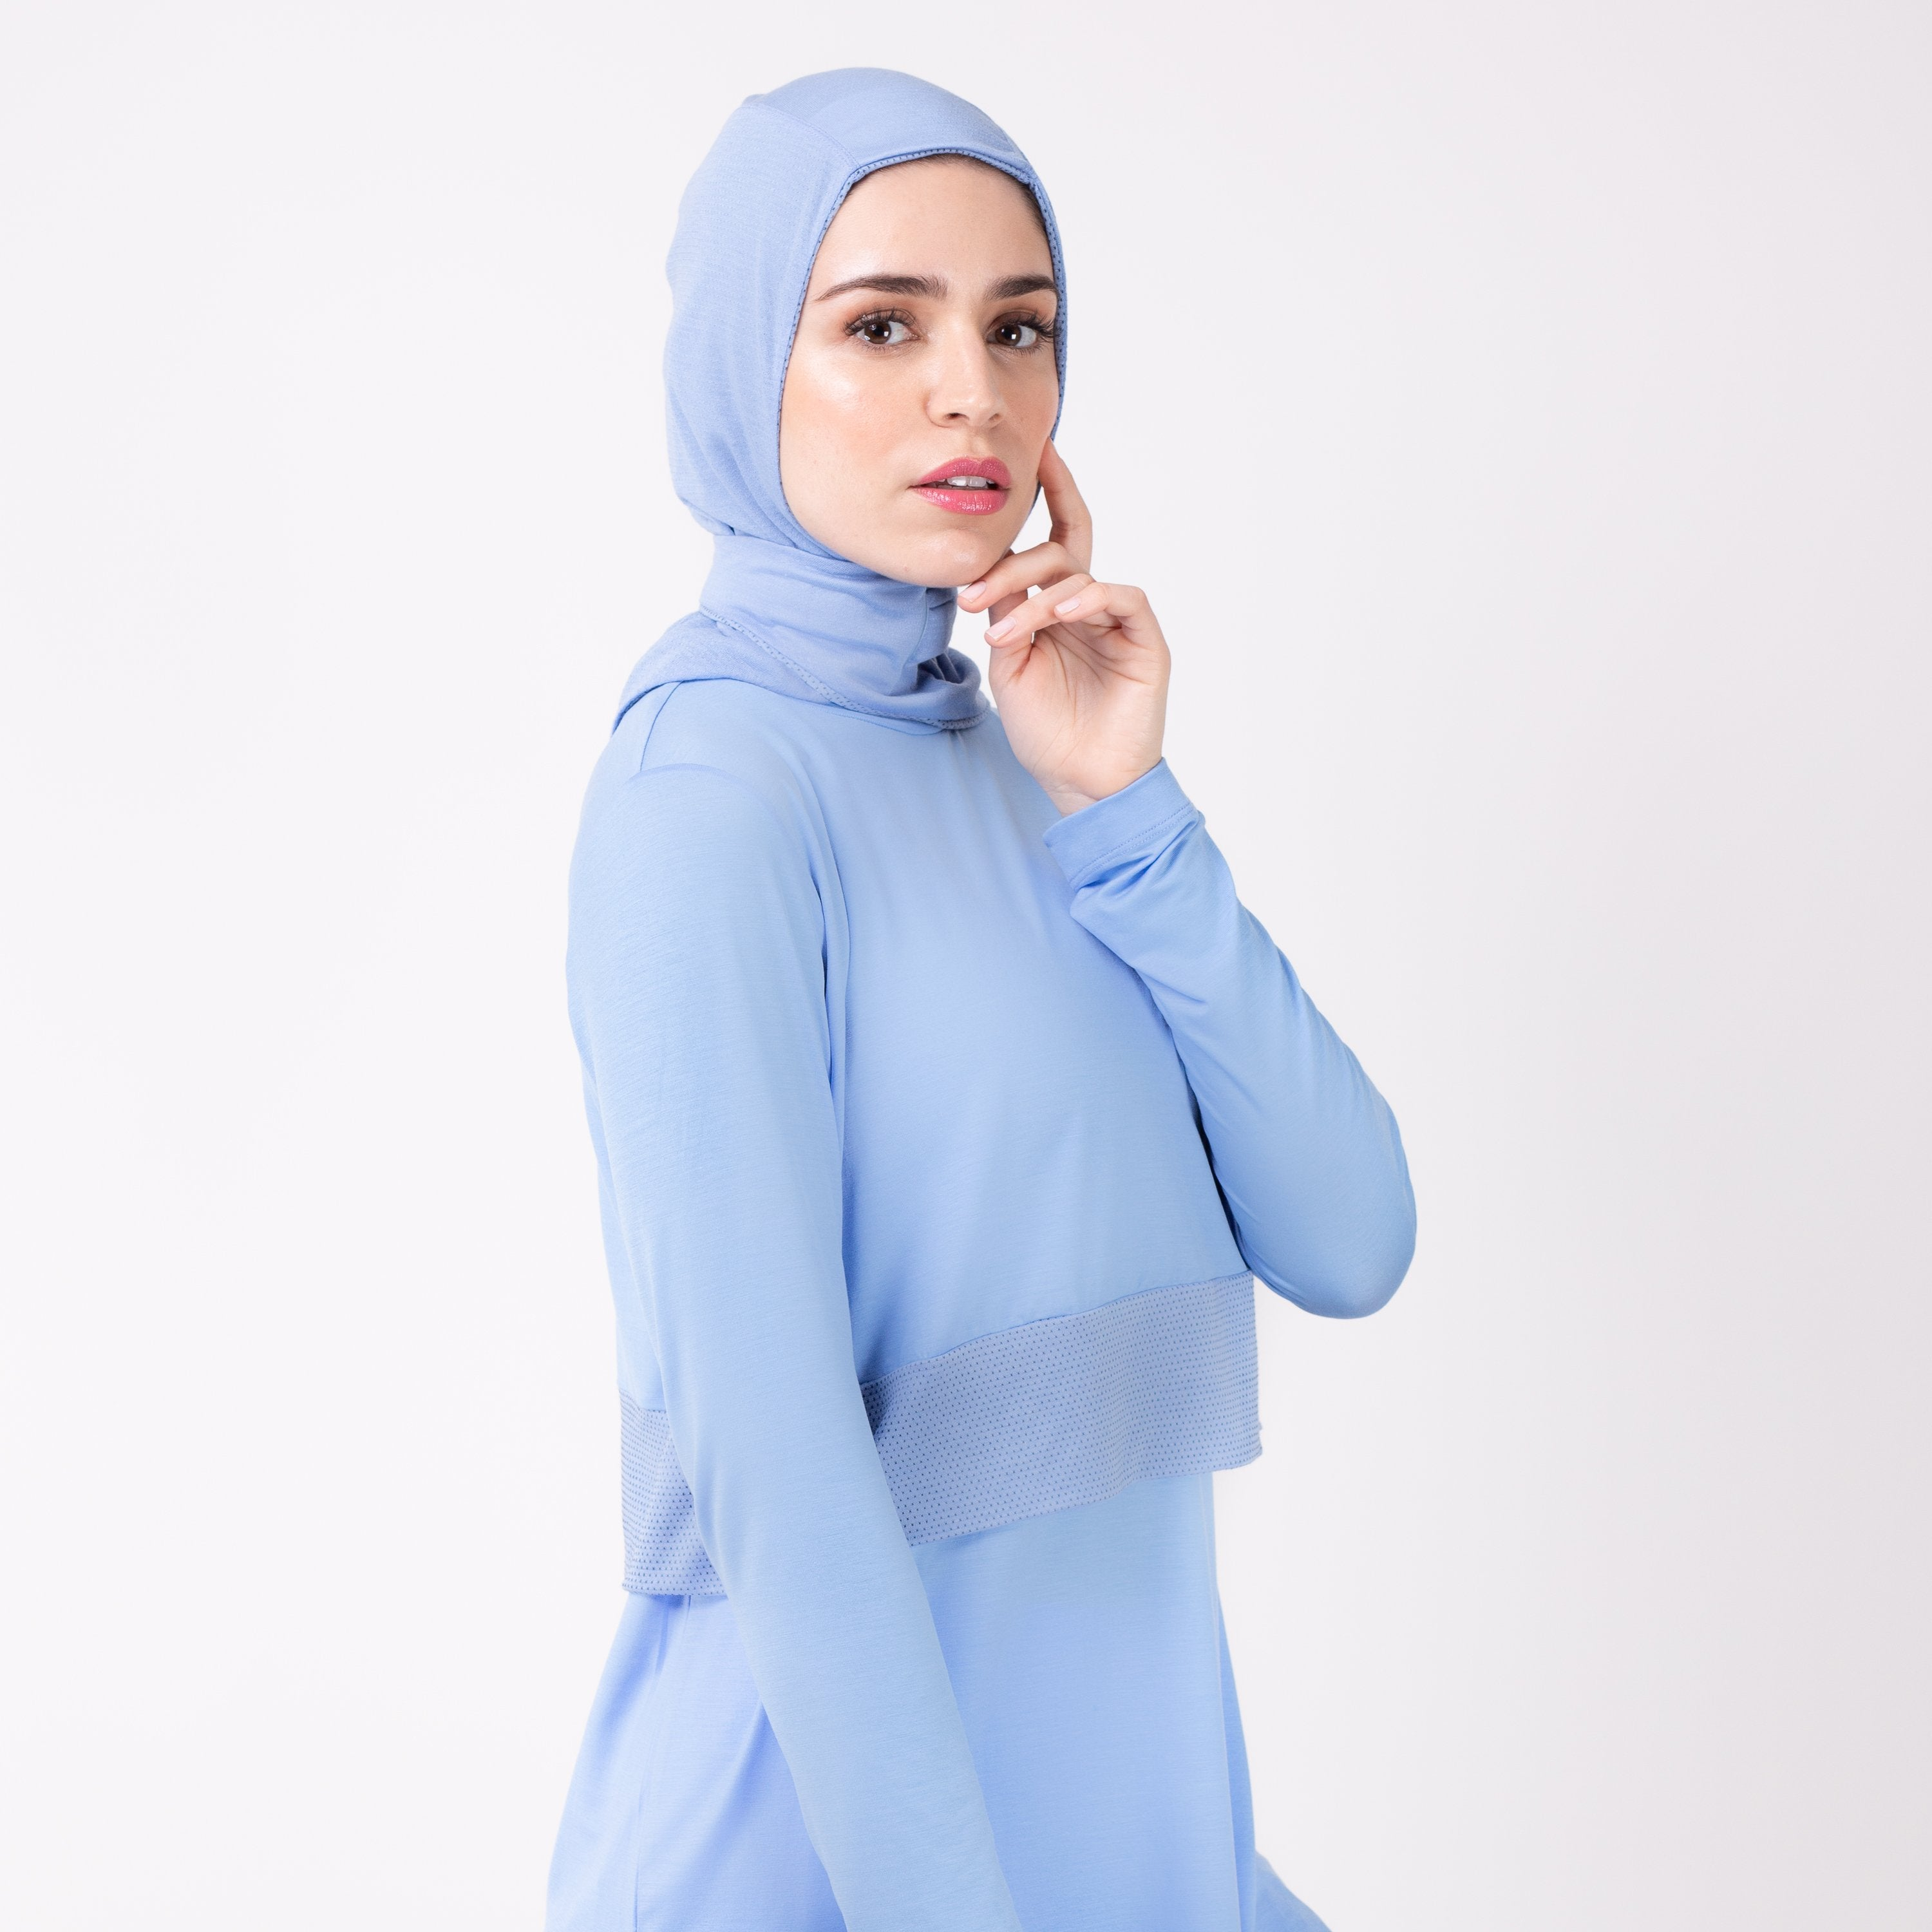 Woman facing right in a sky blue shirt with a matching sky blue HAWA hijab, touching her face with her left hand.